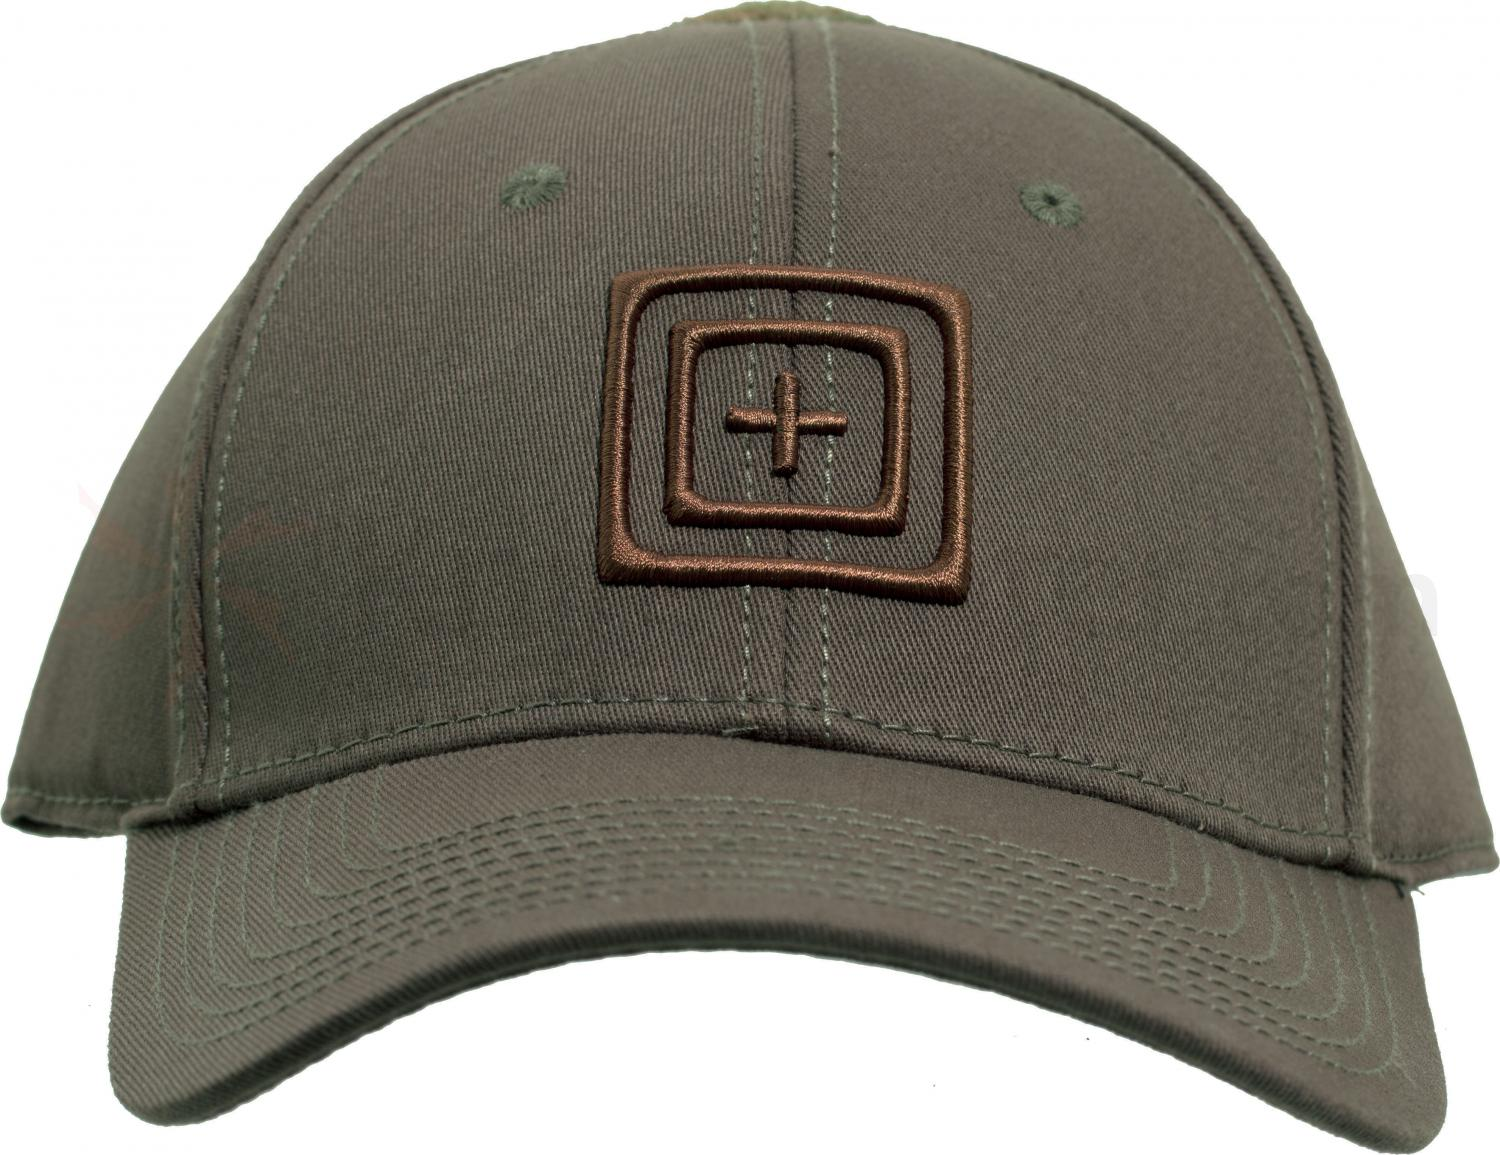 5.11 Tactical Scope Flex Cap, TDU Green, L/XL (89390-190)